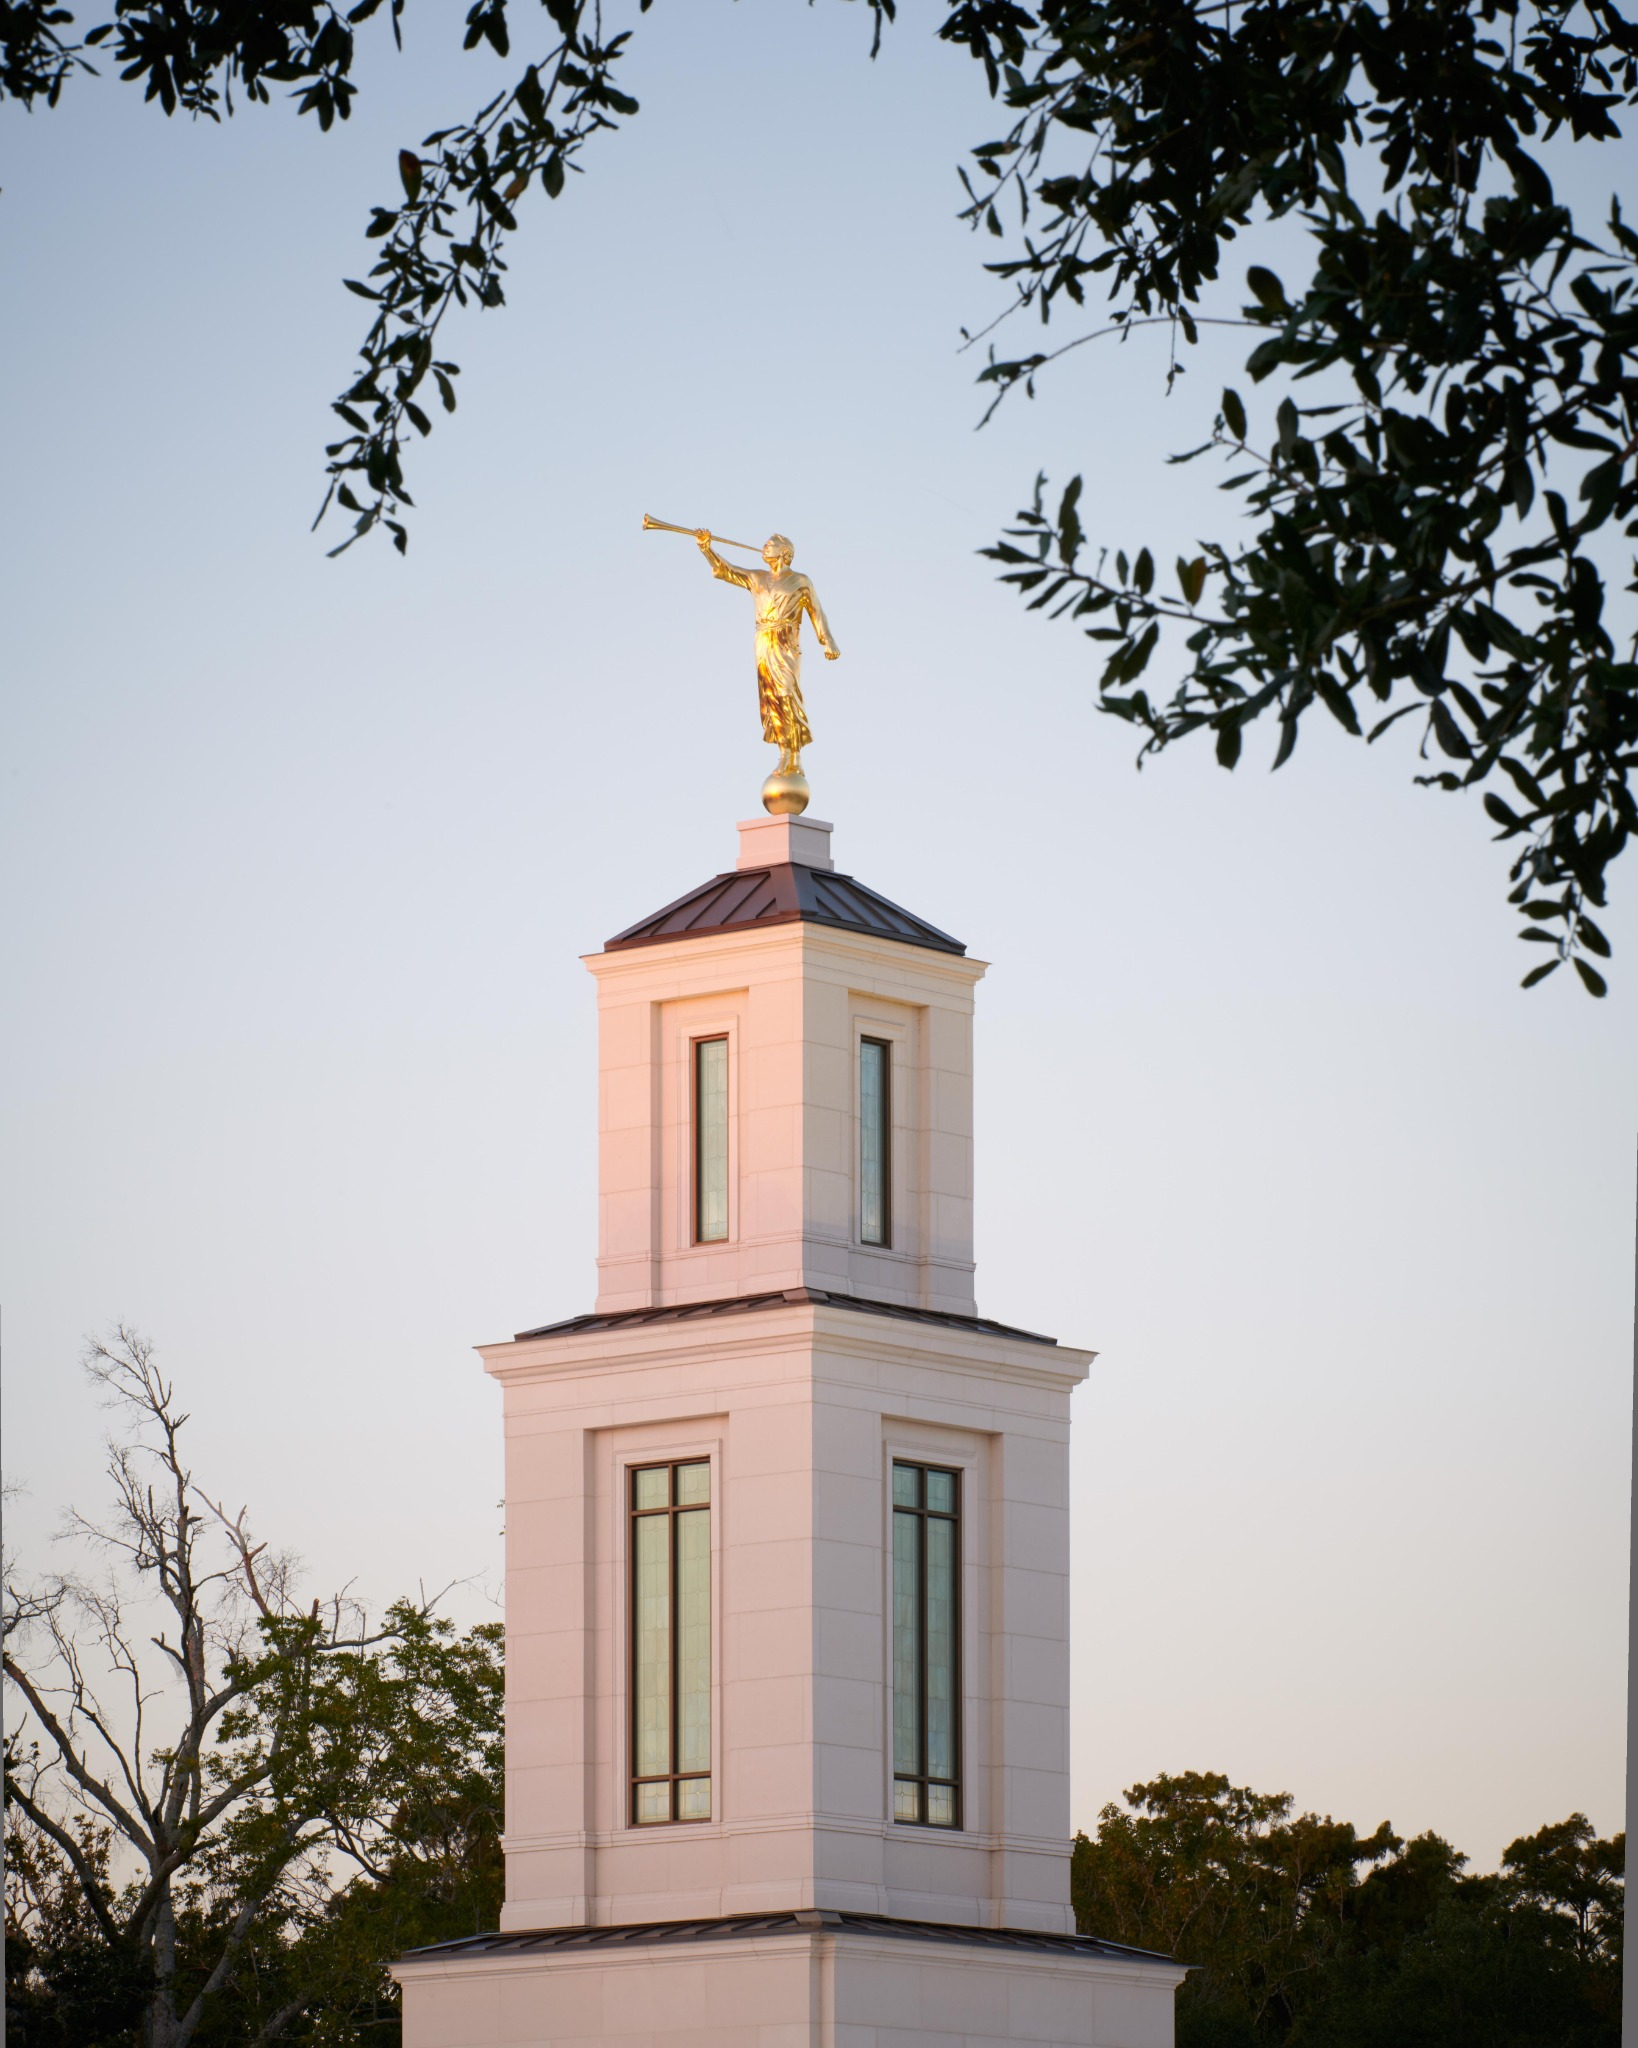 The statue of angel Moroni, an ancient Book of Mormon prophet, atop the Baton Rouge Louisiana Temple.